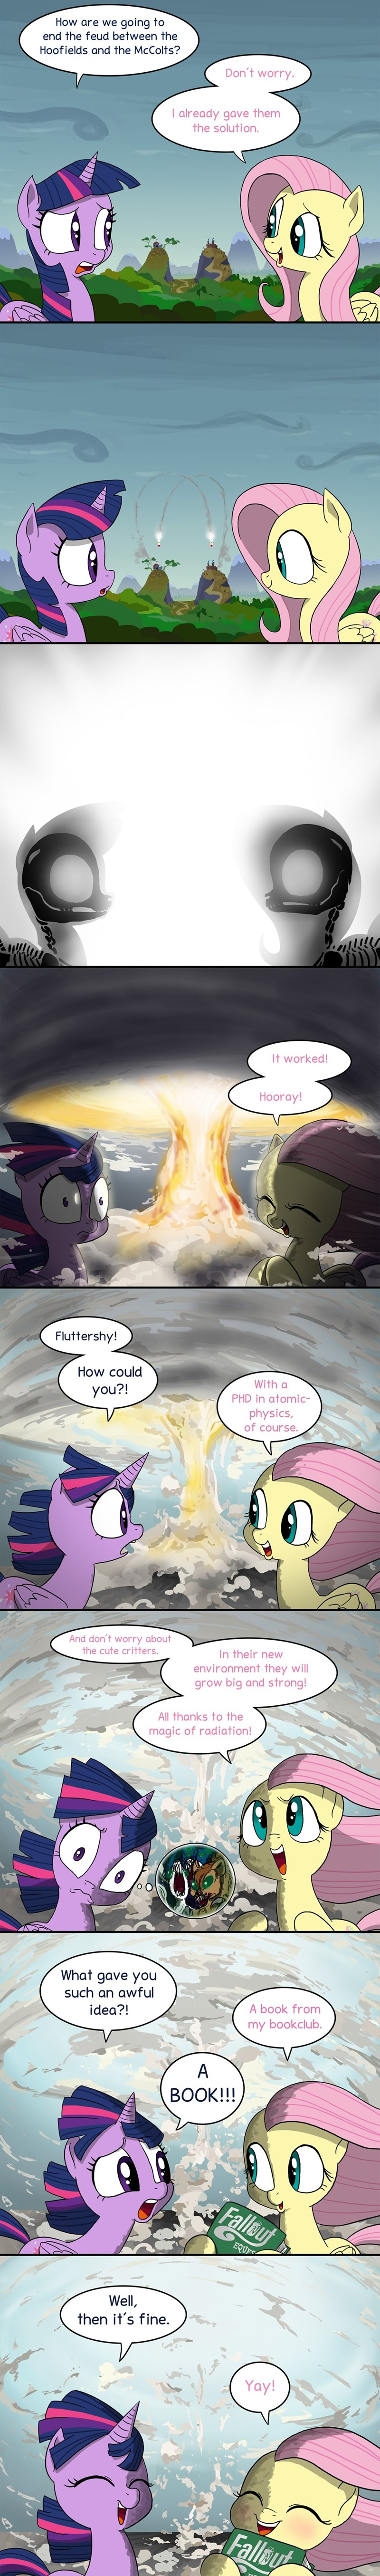 the hooffields and mccolts fallout twilight sparkle fallout equestria fluttershy - 8587054336